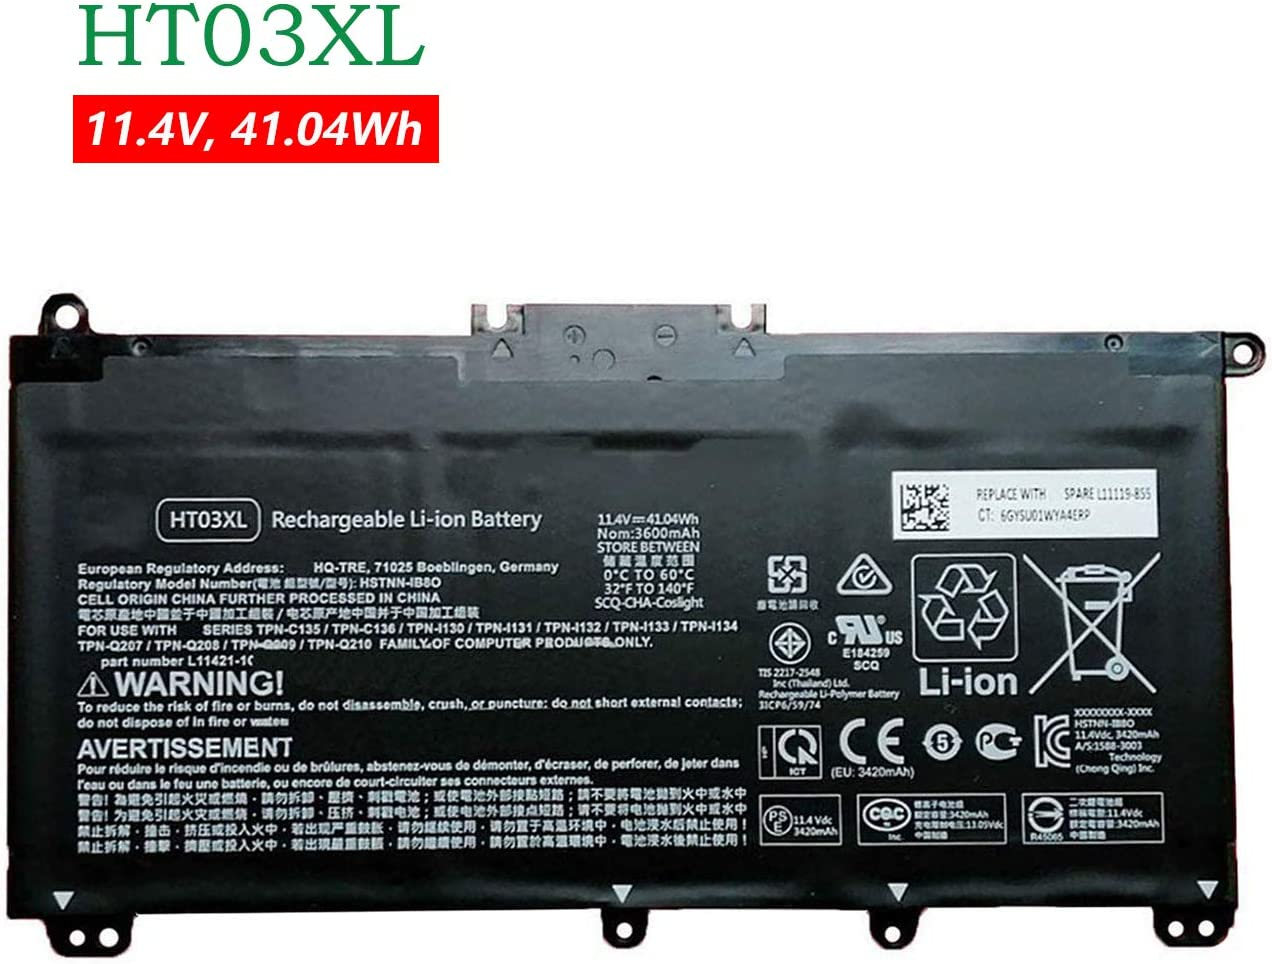 BOWEIRUI HT03XL HSTNN-IB8O L11421-1C (11.4V 41.04Wh 3600mAh) Laptop Battery Replacement for Hp Pavilion 14-CE 15-CS 15-DA 250 G7 255 G7 Series HSTNN-LB8L HSTNN-IB8OL HSTNN-DB8SL HSTNN-DB8R HSTNN-LB8M